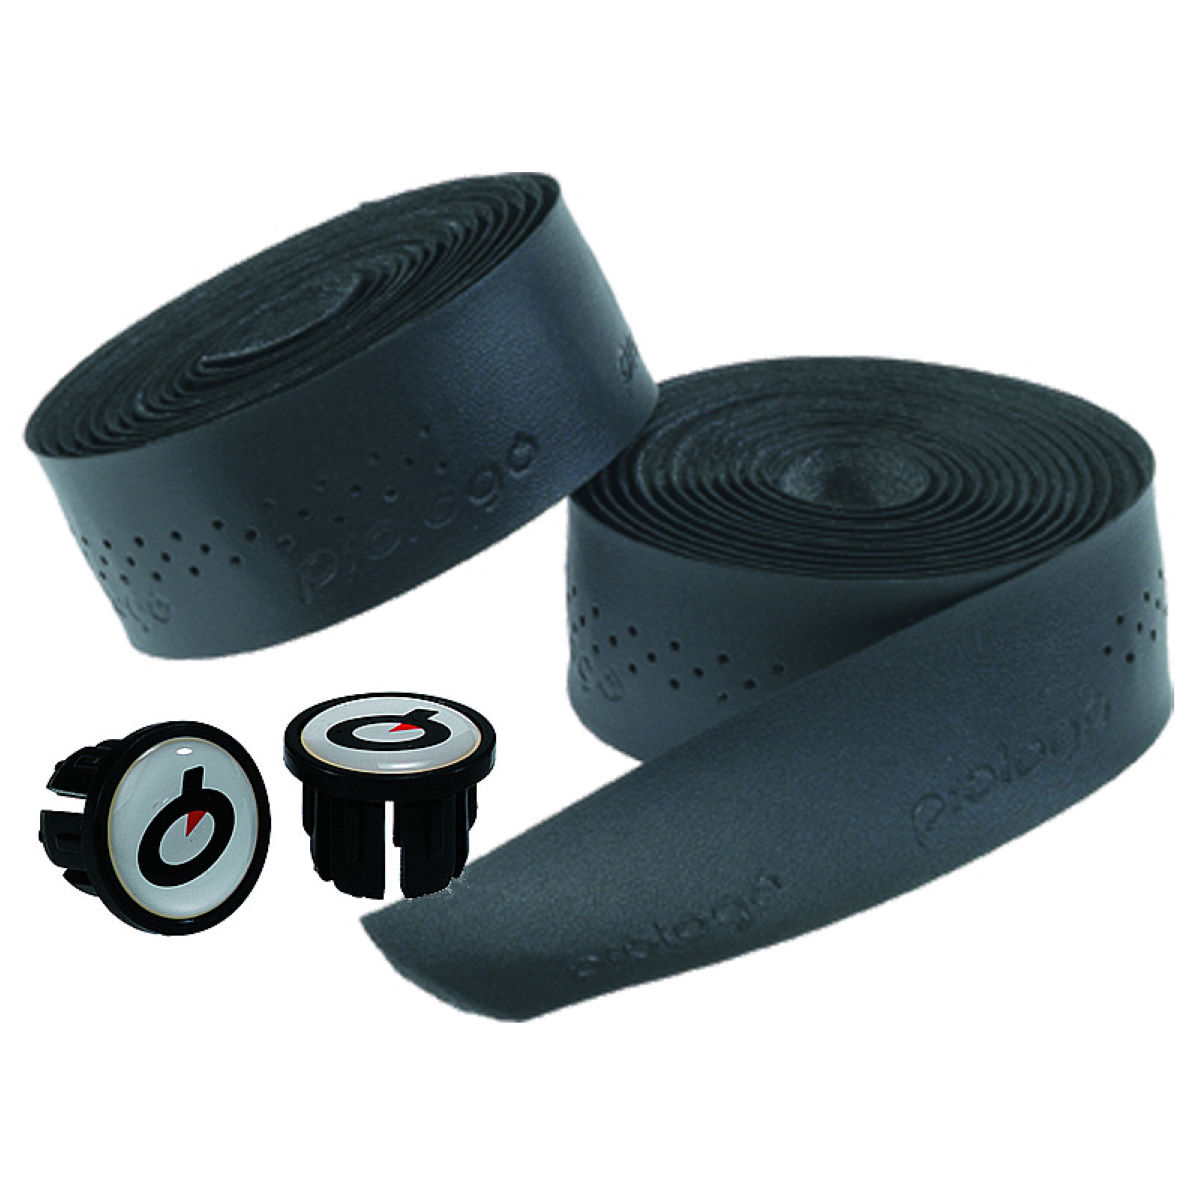 Prologo Microtouch Handlebar Tape - Black  Bar Tape